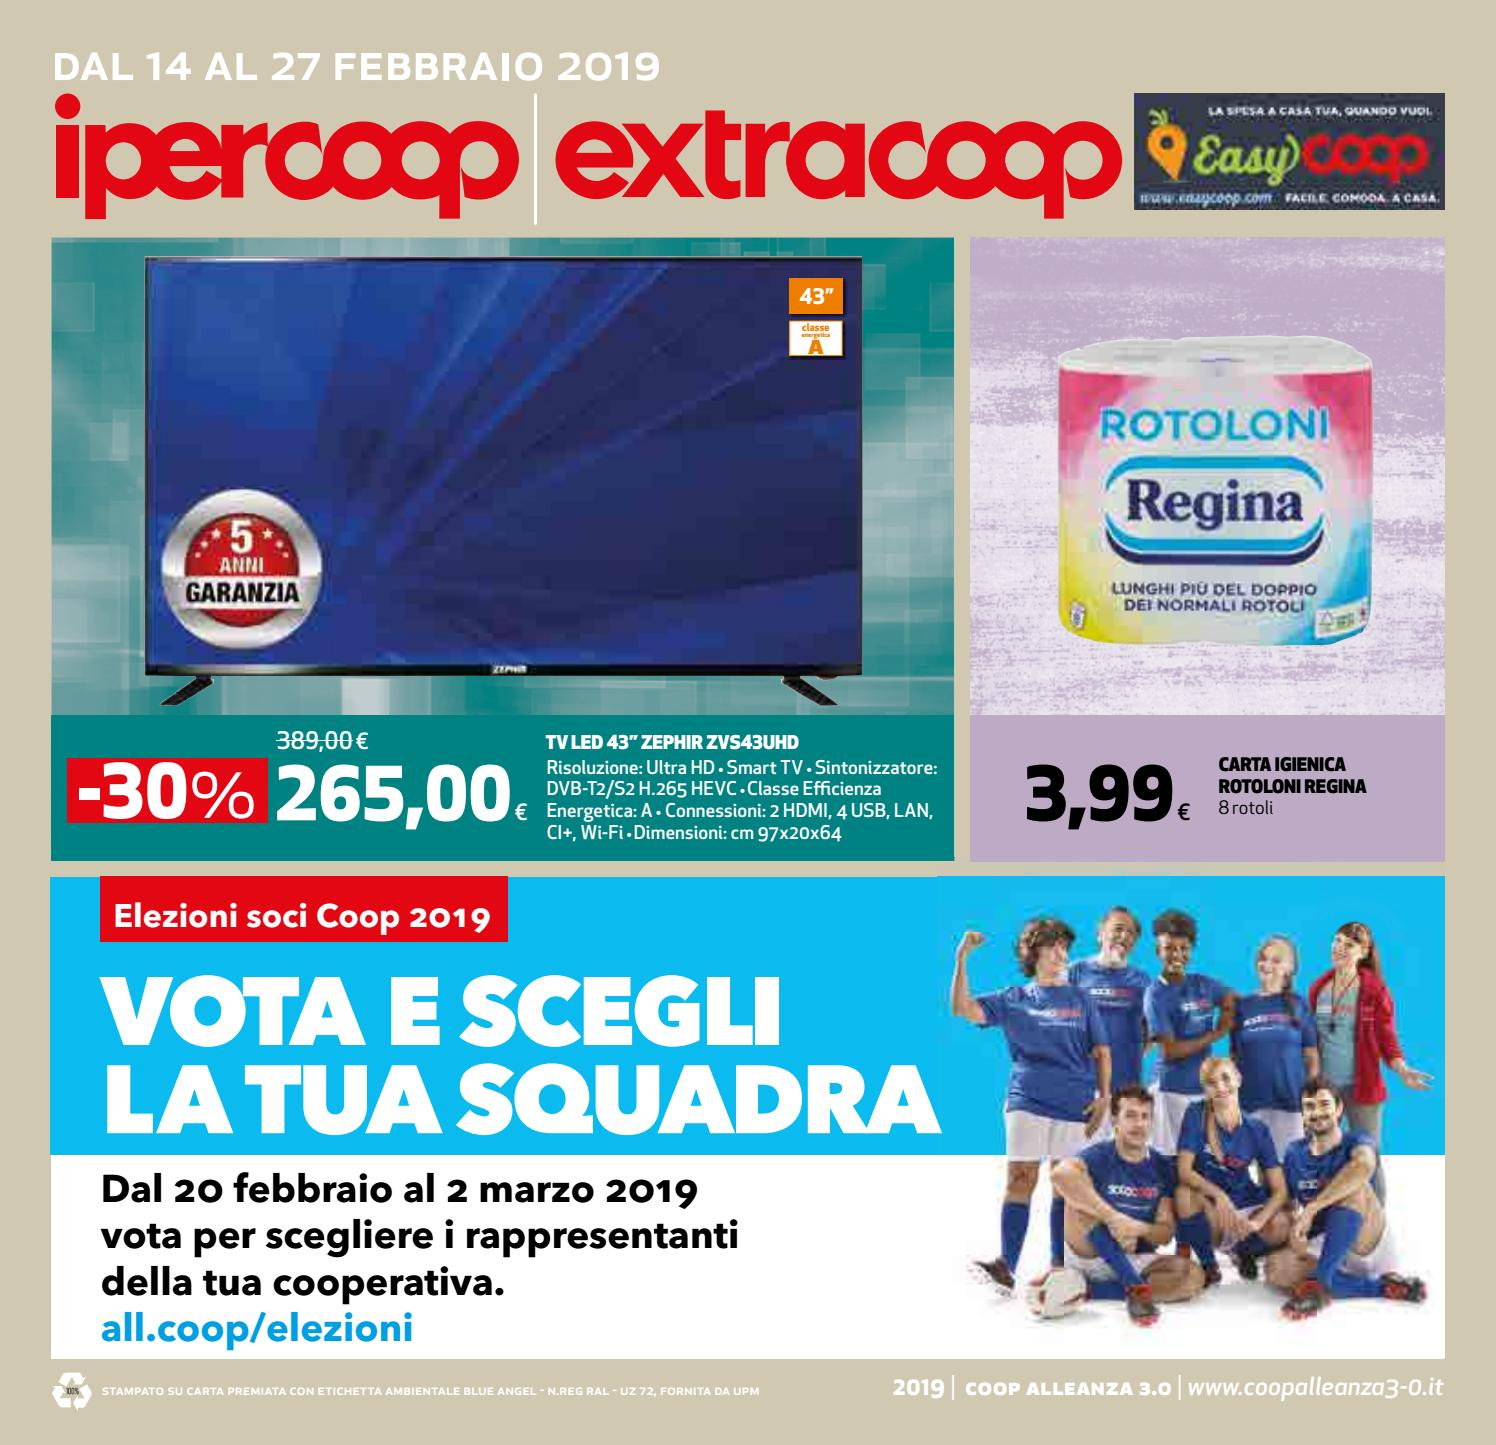 Tappeto Bambini Coop 55892 Ipmk Bo Im Pdf8442410318167963371 By Coop Alleanza 3 Issuu